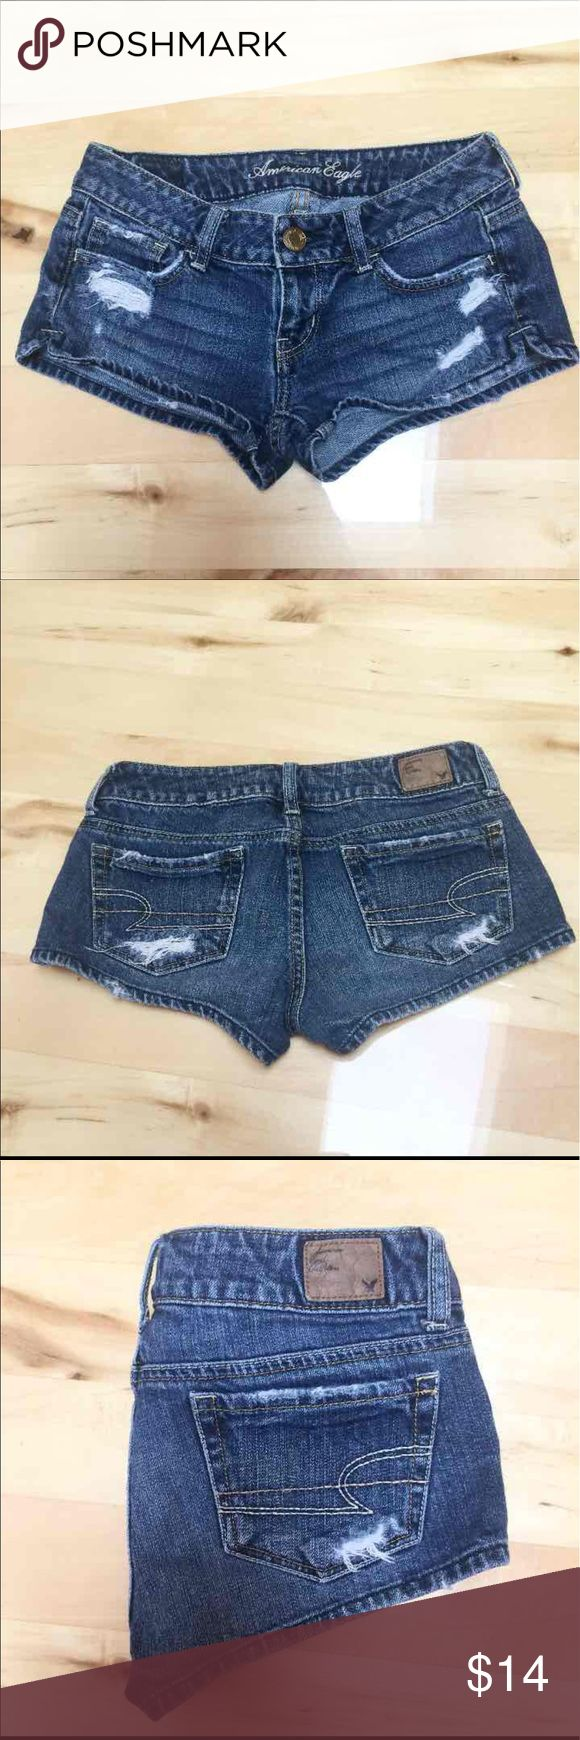 American Eagle Distressed Shorts Size 00 🔥SALE🔥 I believe this could either fit a 23 or a 24. I am selling them because I no longer wear them. They are in great condition, they have been loved, but well taken care of. The shorts have never been dried in the dryer. I don't believe in putting clothes in the dryer because I believe it distorts the shape. I am always open to reasonable offers on all items I have listed. I only ask when making an offer, you make an offer that you would want…